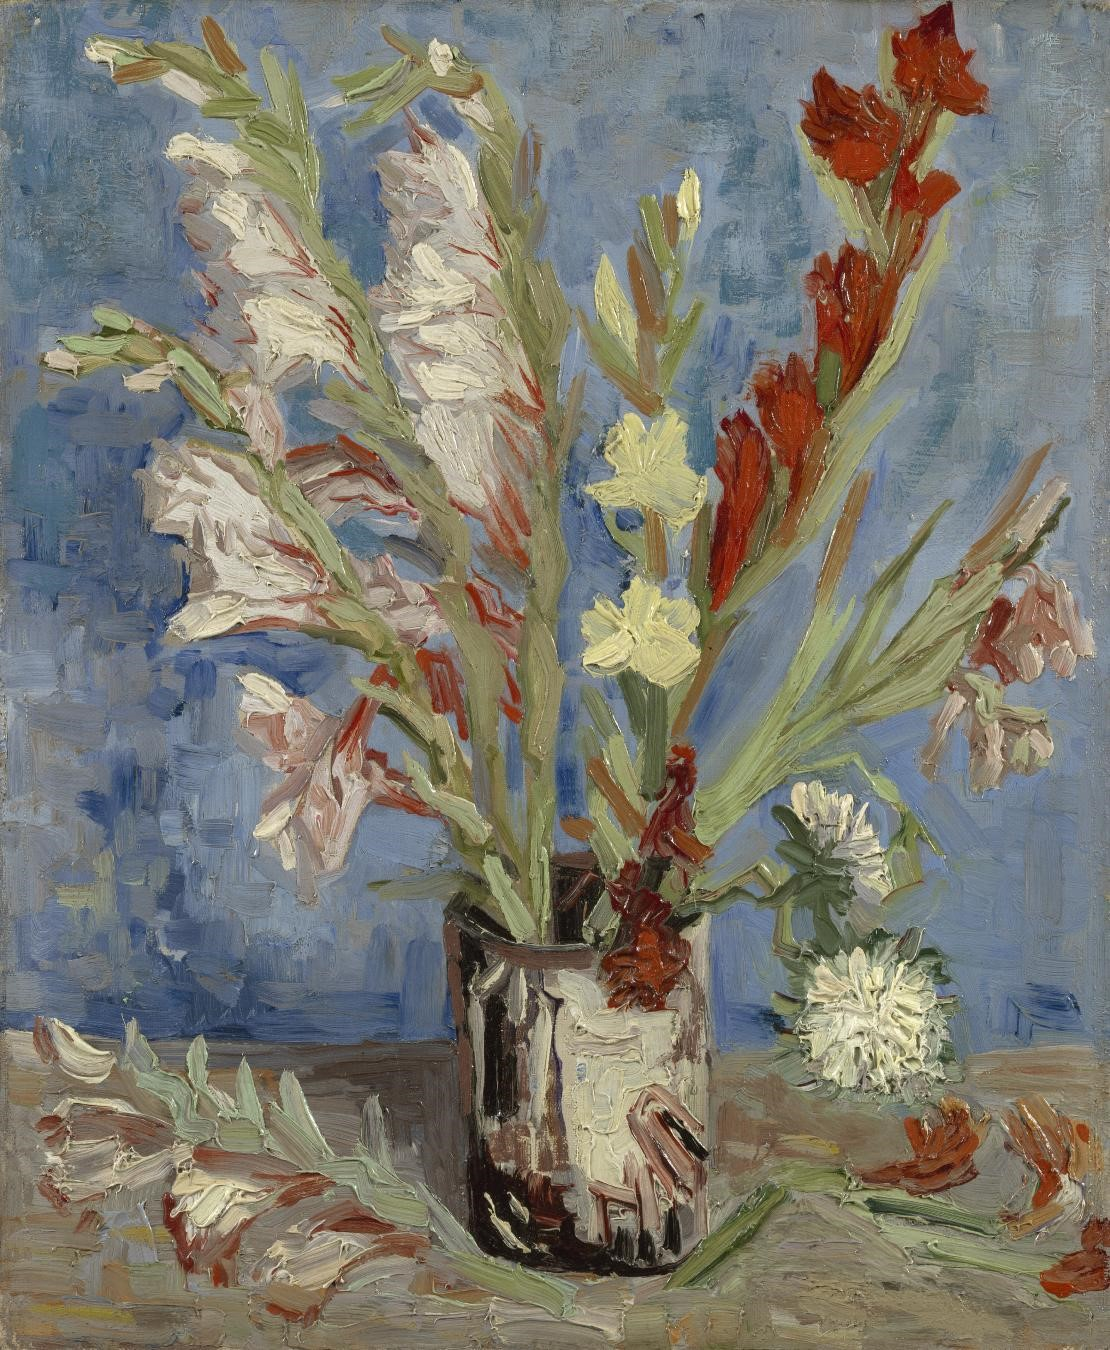 Vincent van Gogh, Vase with Gladioli and Chinese Asters, August–September 1886, oil on canvas, Van Gogh Museum, Amsterdam (Vincent van Gogh Foundation).